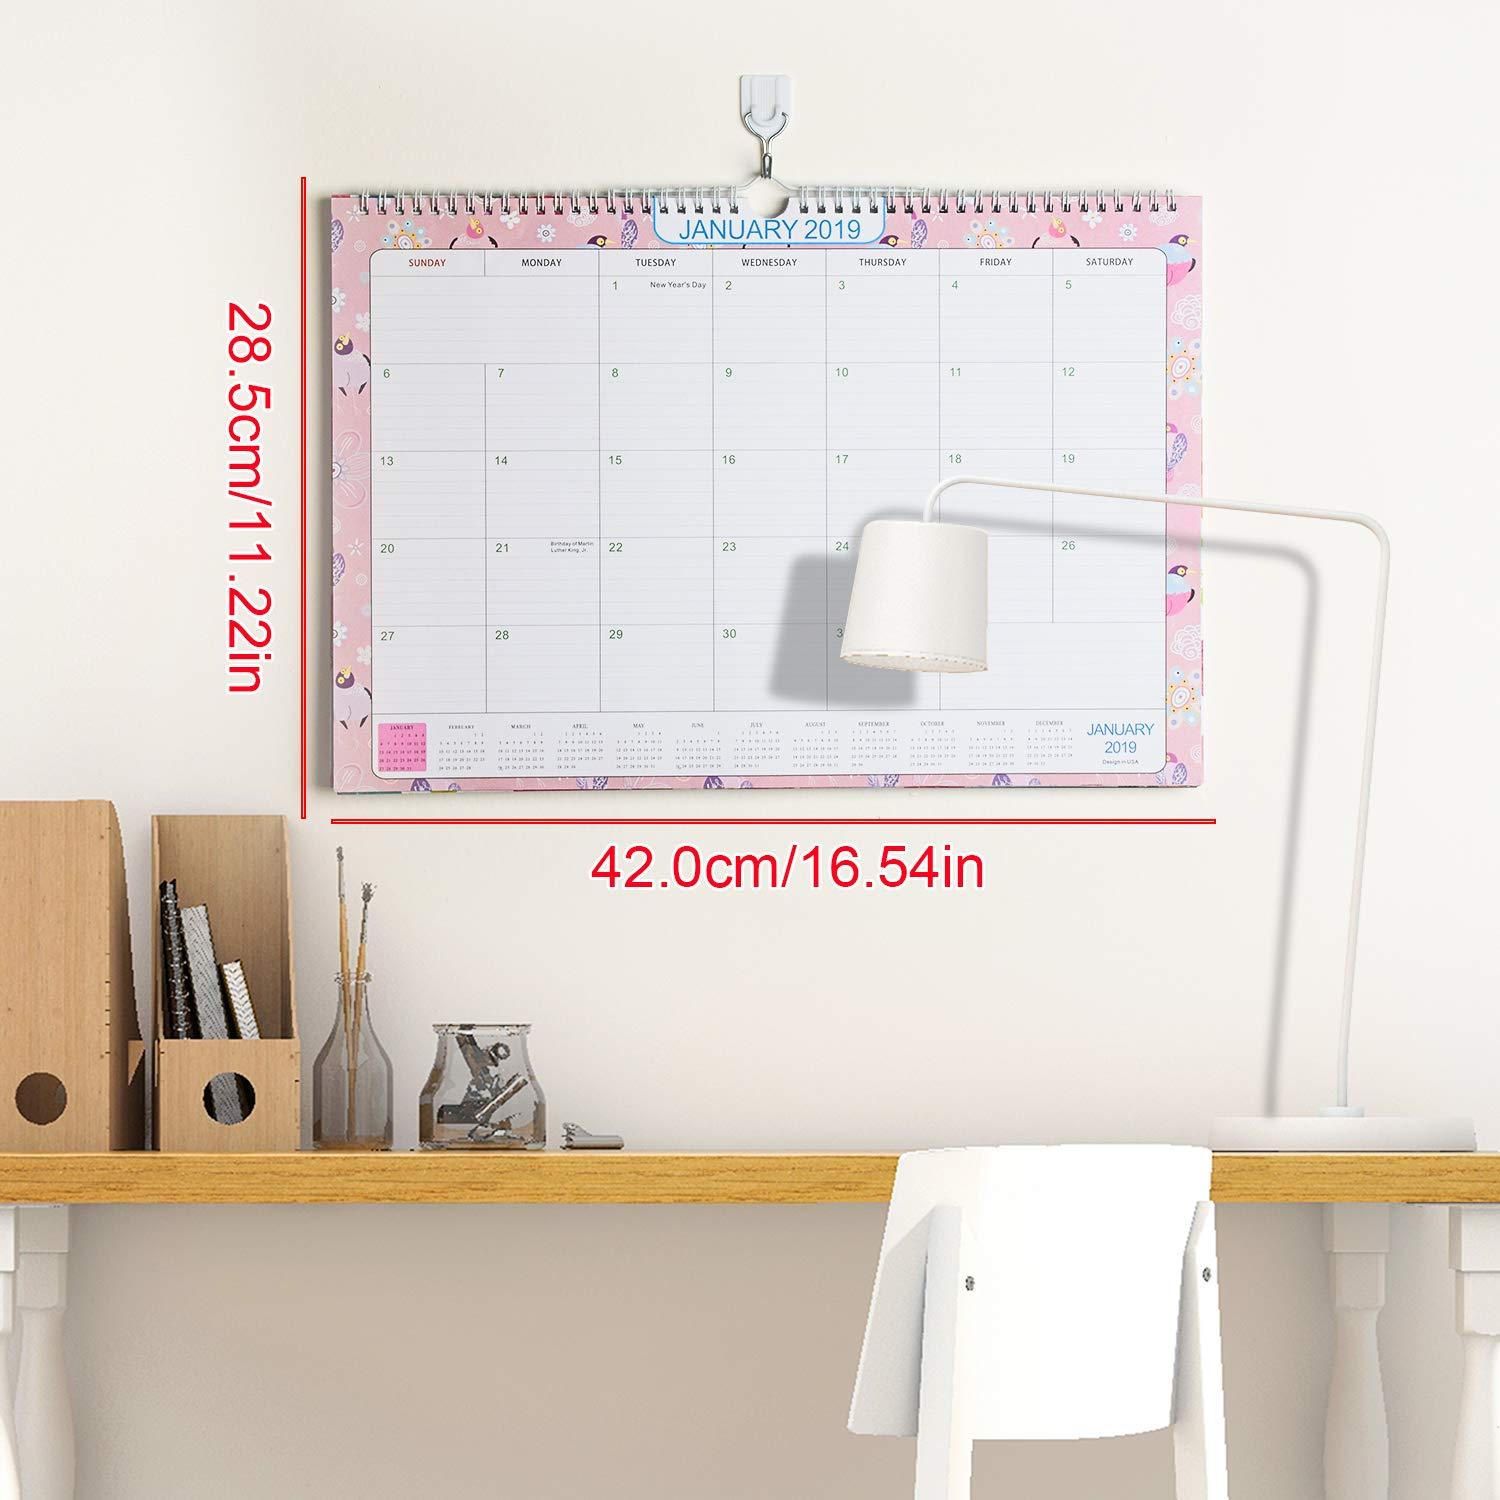 Desk Calendar 2018-2019 Monthly Yearly Wall Pad Calendar Daily Planners Ruled Blocks to-Do List Notepad October 2018 - December 2019 + 6 Sets of Stickers